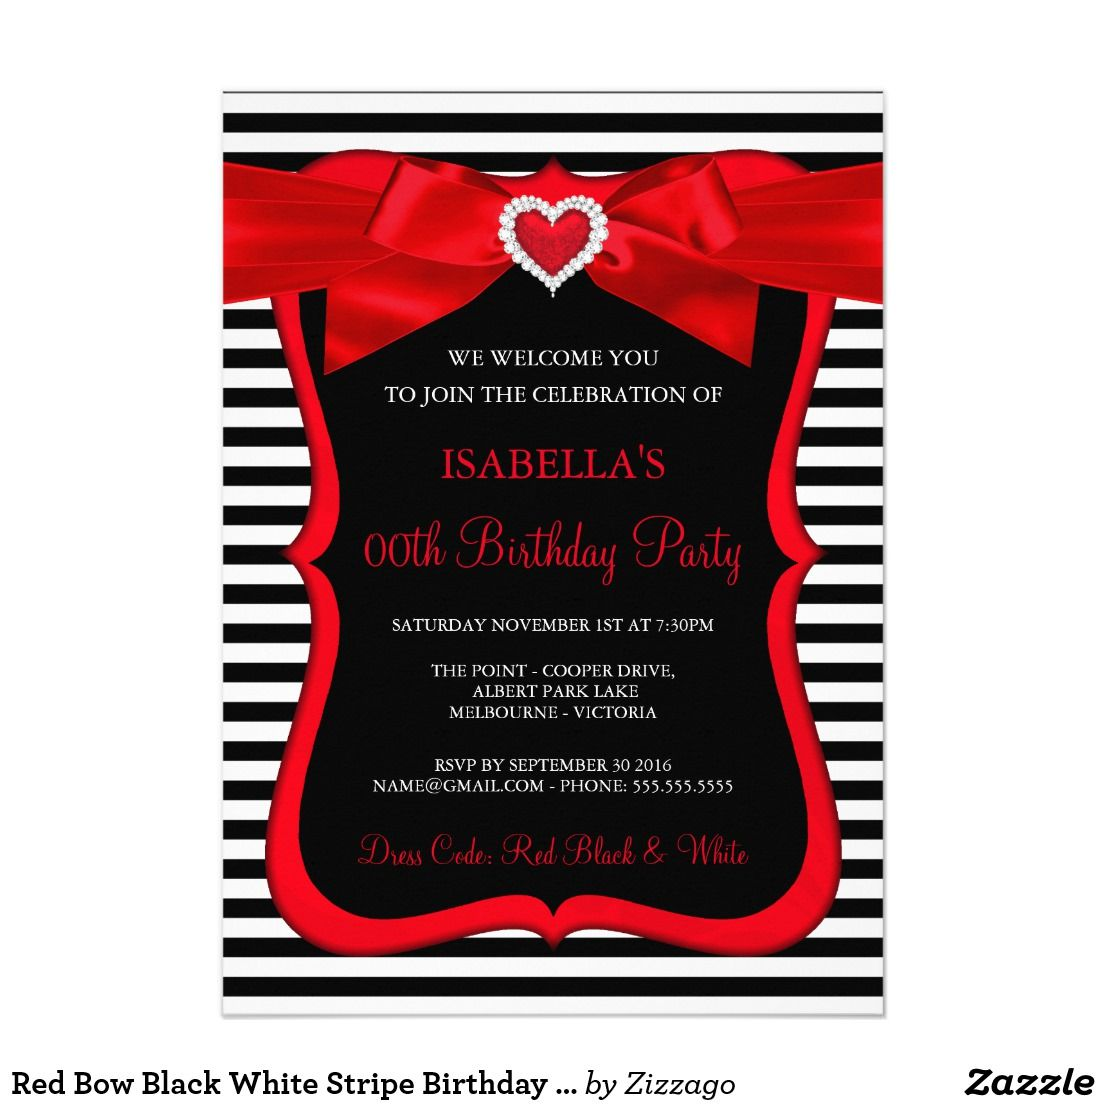 Red Bow Black White Stripe Birthday Party Card Heart